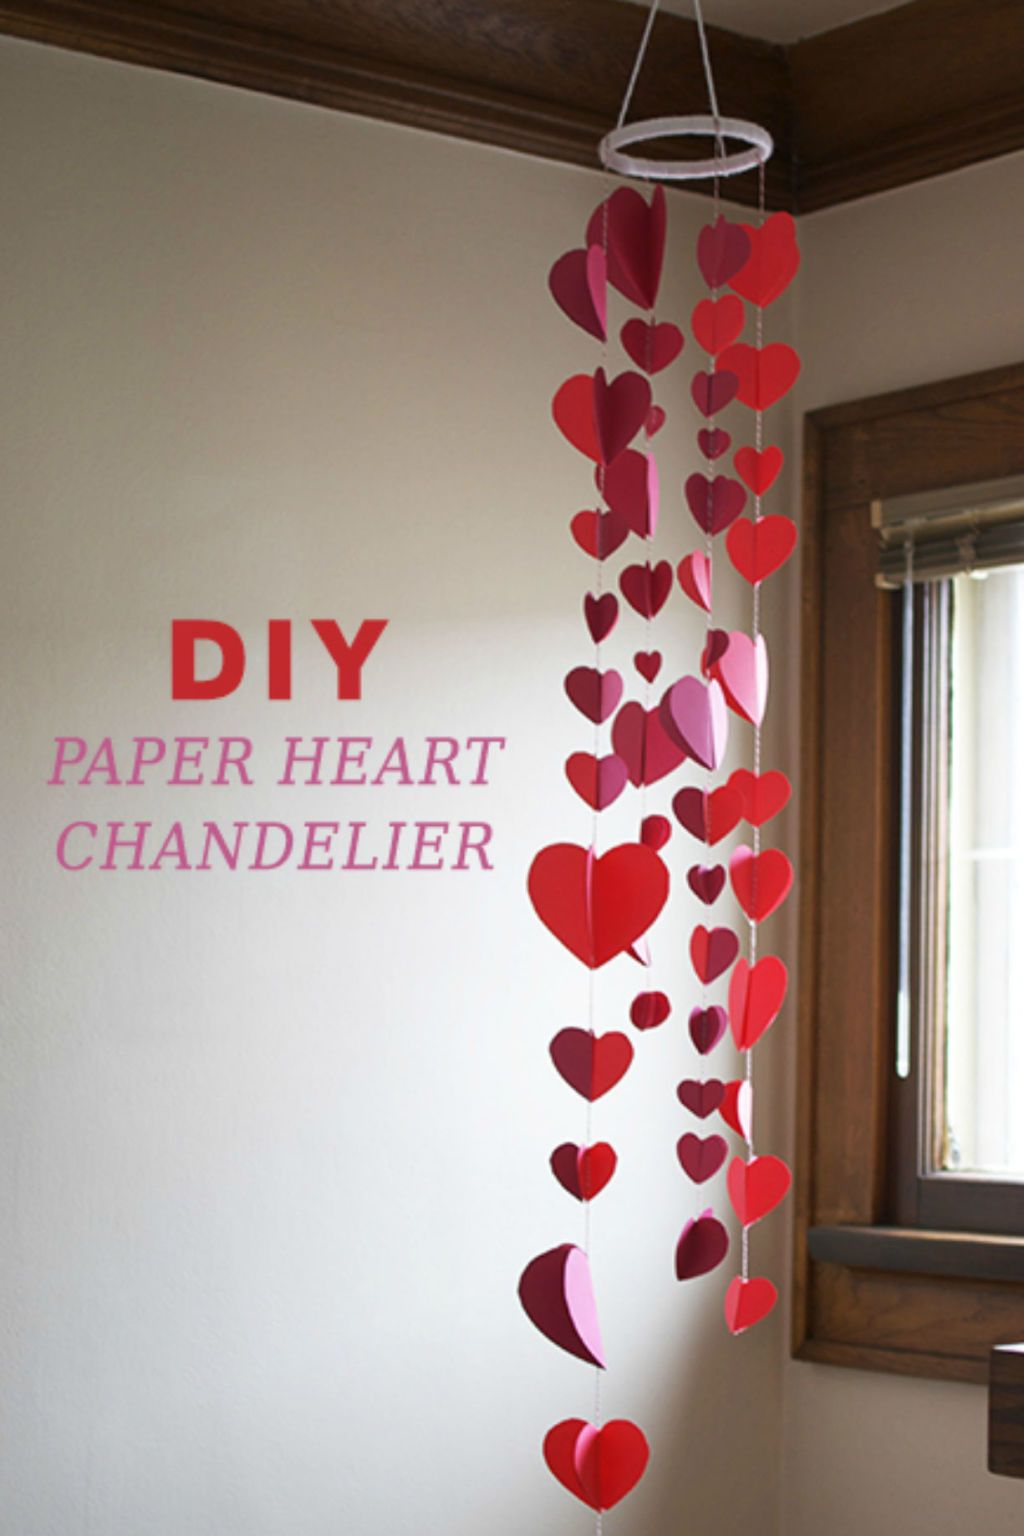 15 sweet ideas for valentines day decorations paper hearts diy 15 sweet ideas for valentines day decorations arubaitofo Image collections